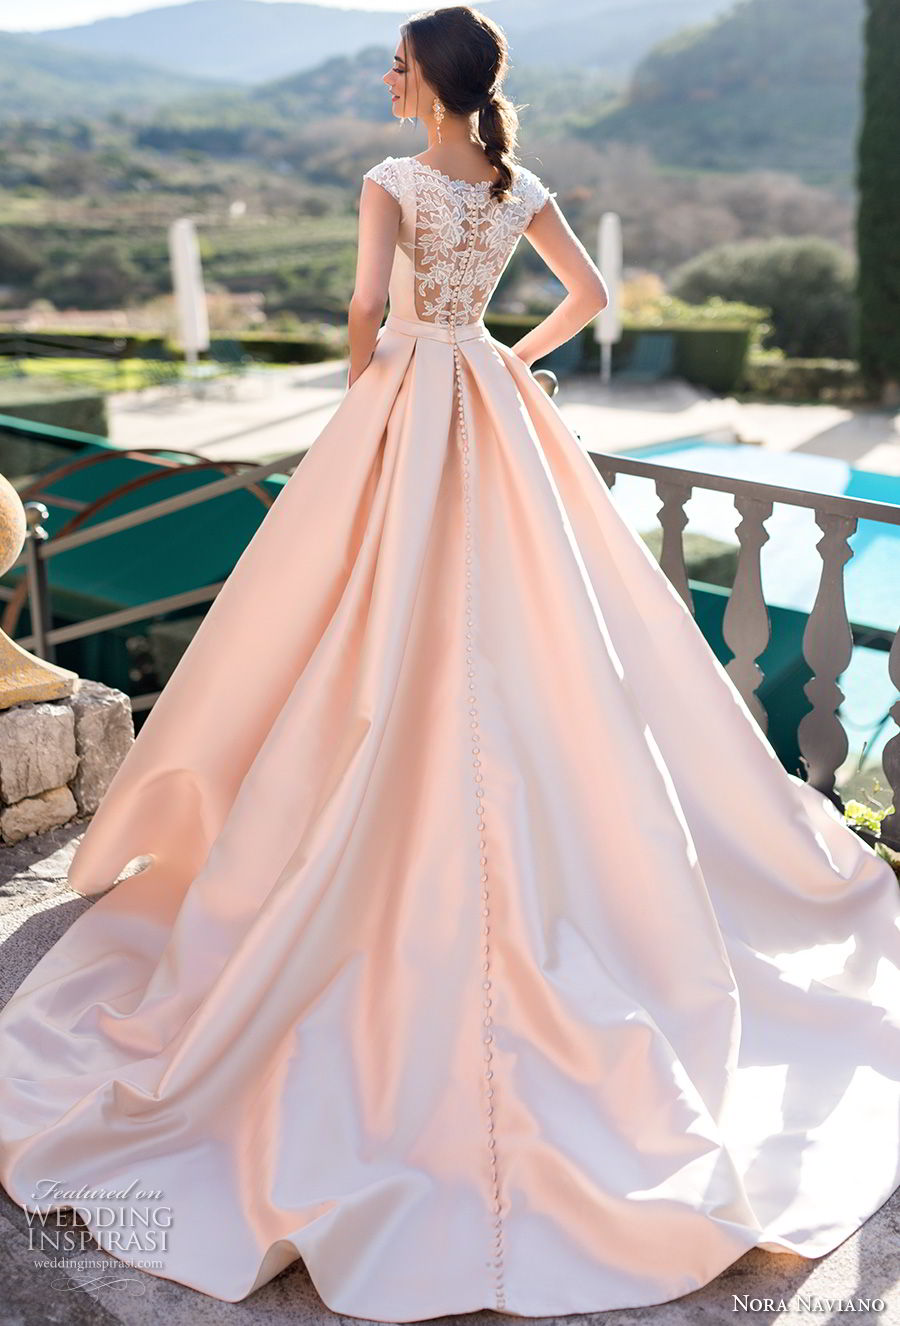 nora naviano 2019 bridal cap sleeves bateau neckline simple clean minimalist elegant blush a  line wedding dress with pockets covered lace back chapel train (4) bv